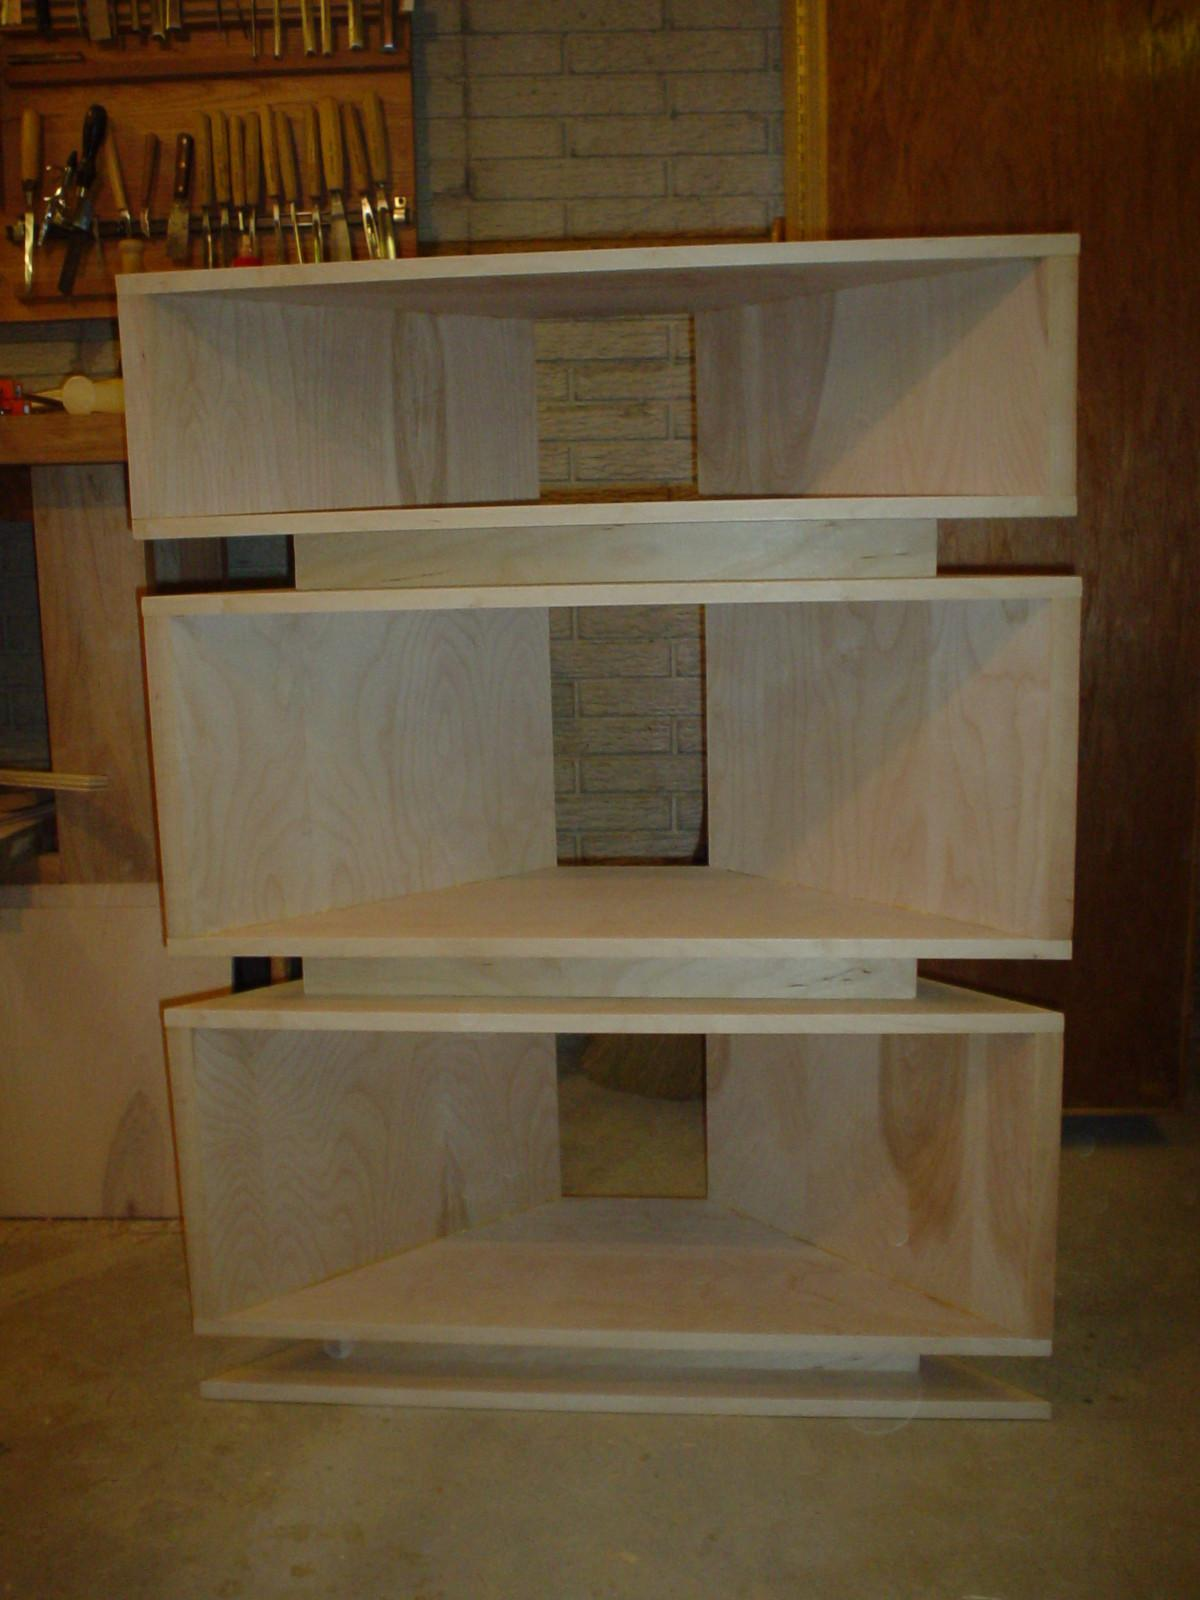 Customized Solutions Shelving